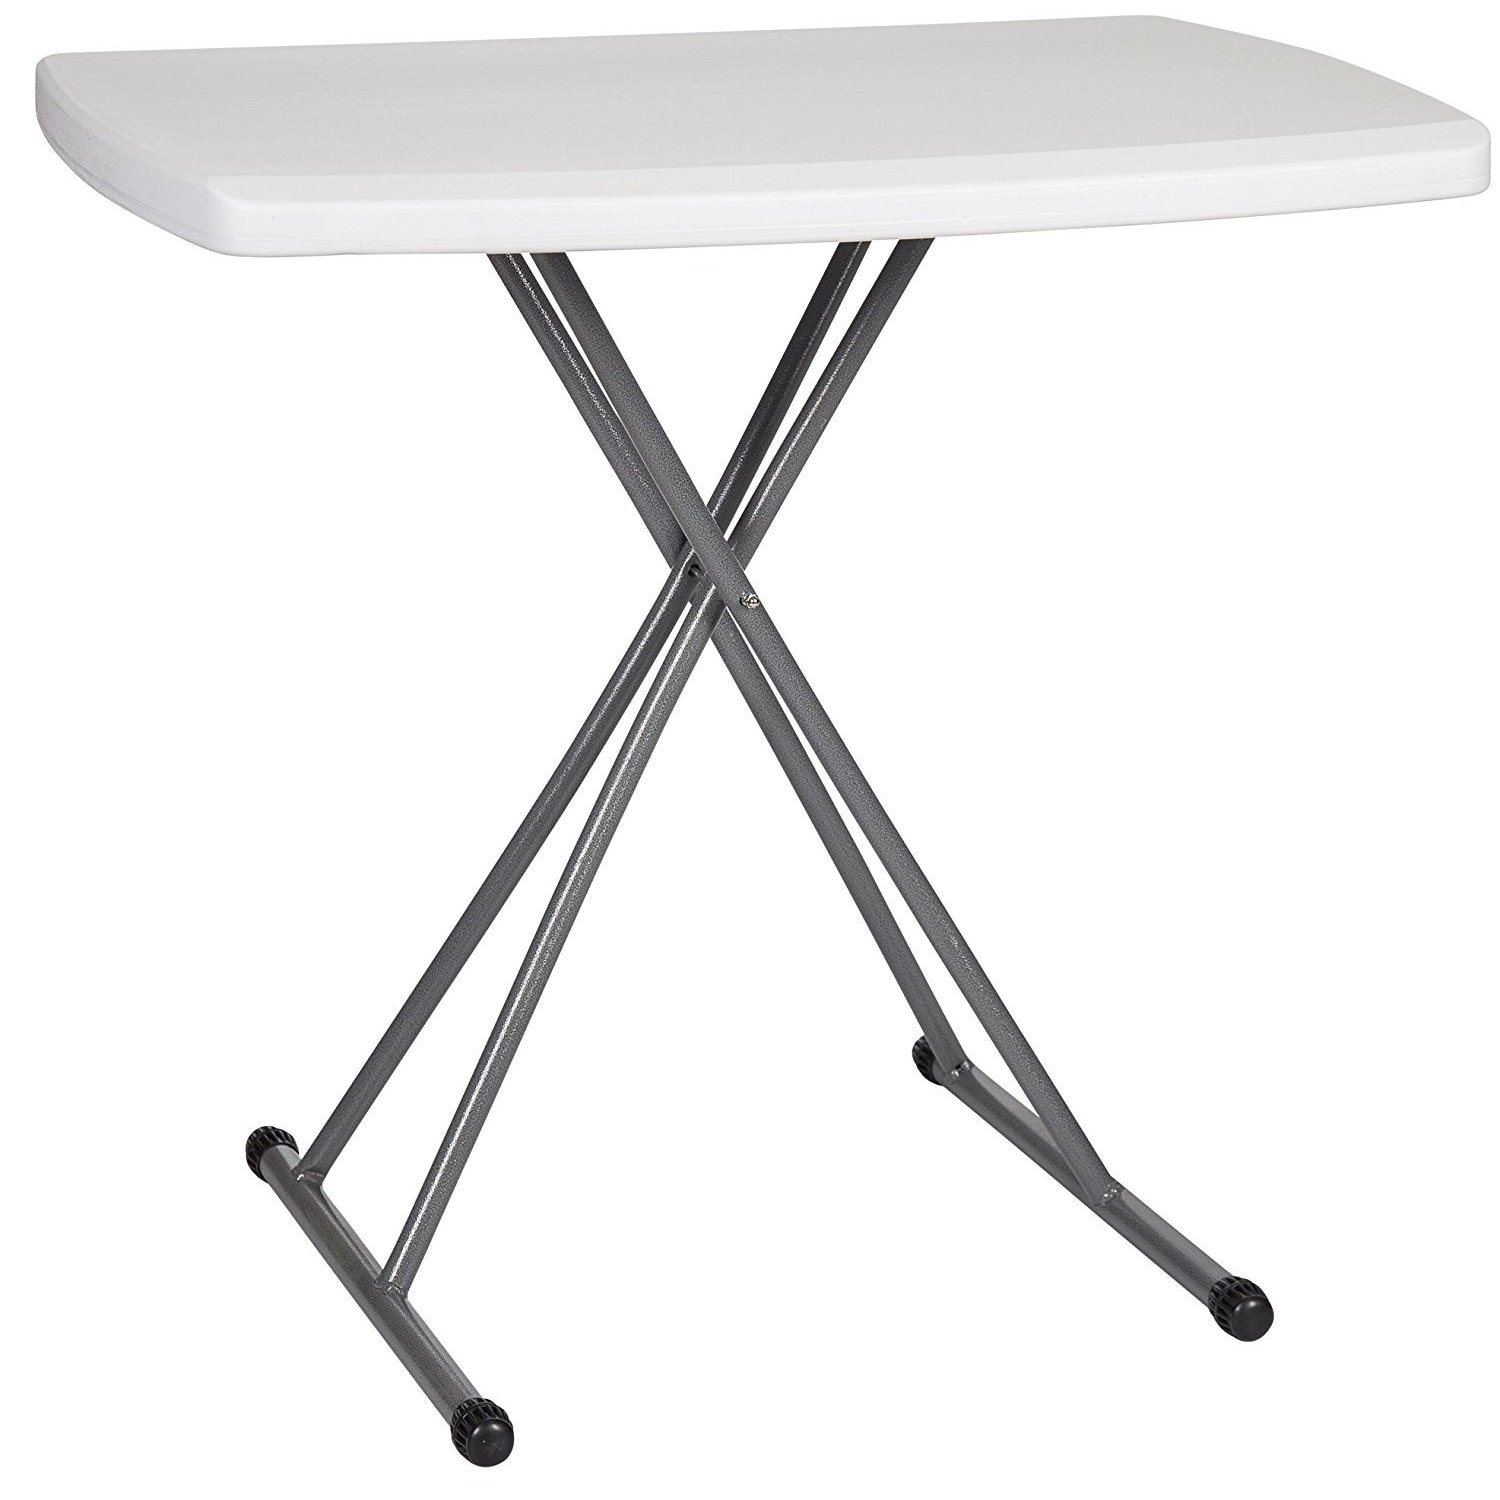 Zimmer Personal Table 20 X 30, Beige Off-White